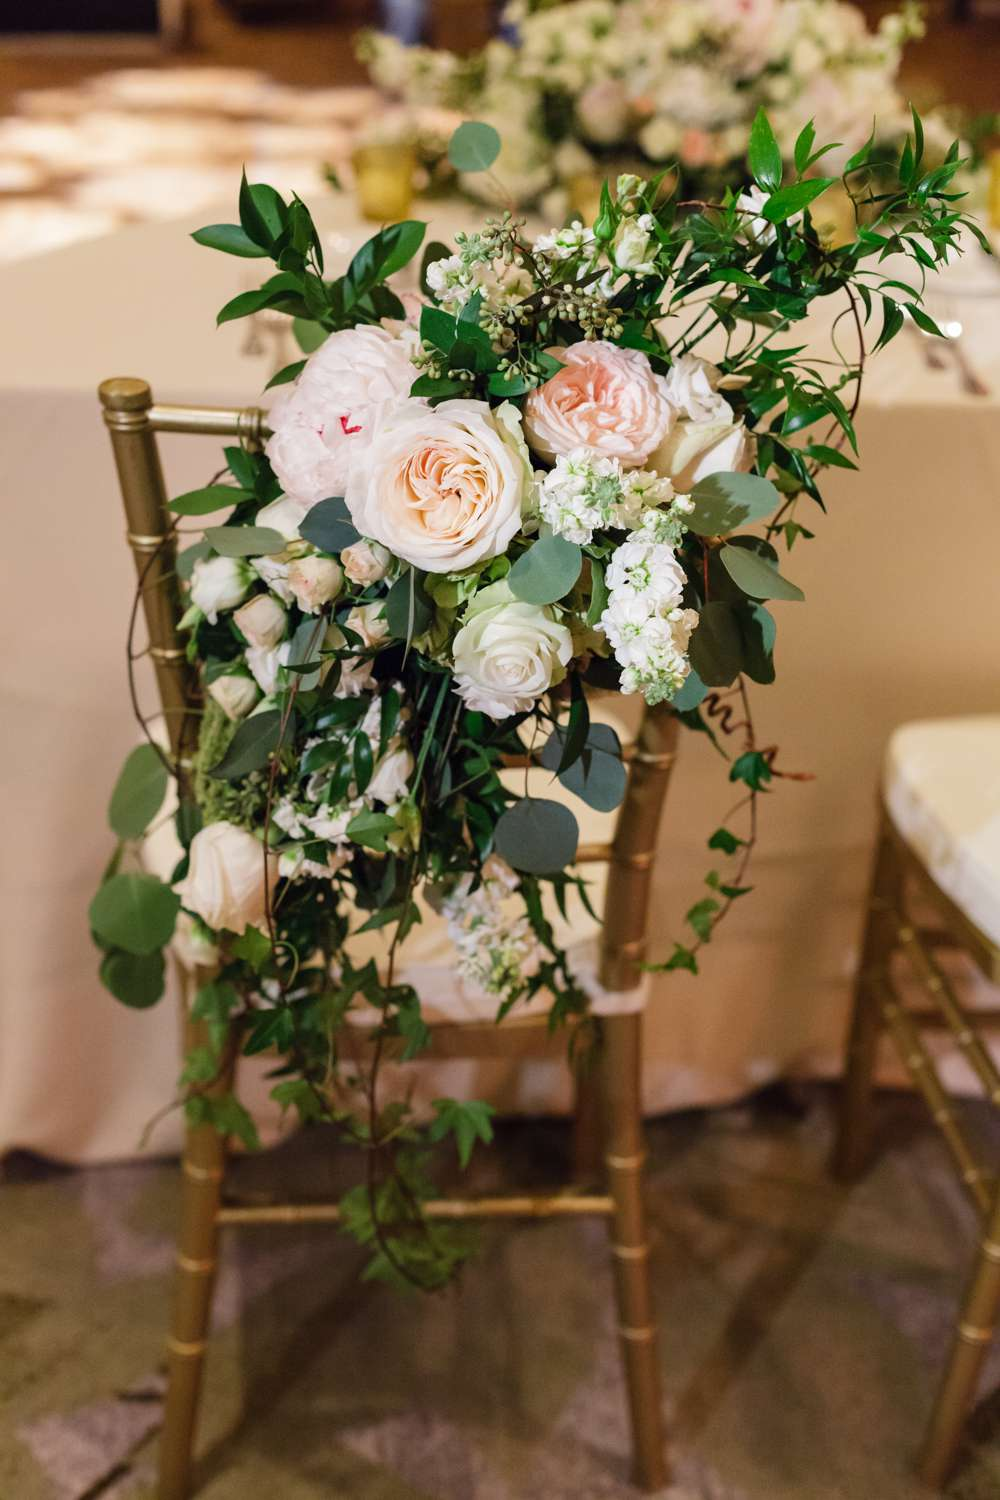 <p>Chair covered in flowers</p><br><br>